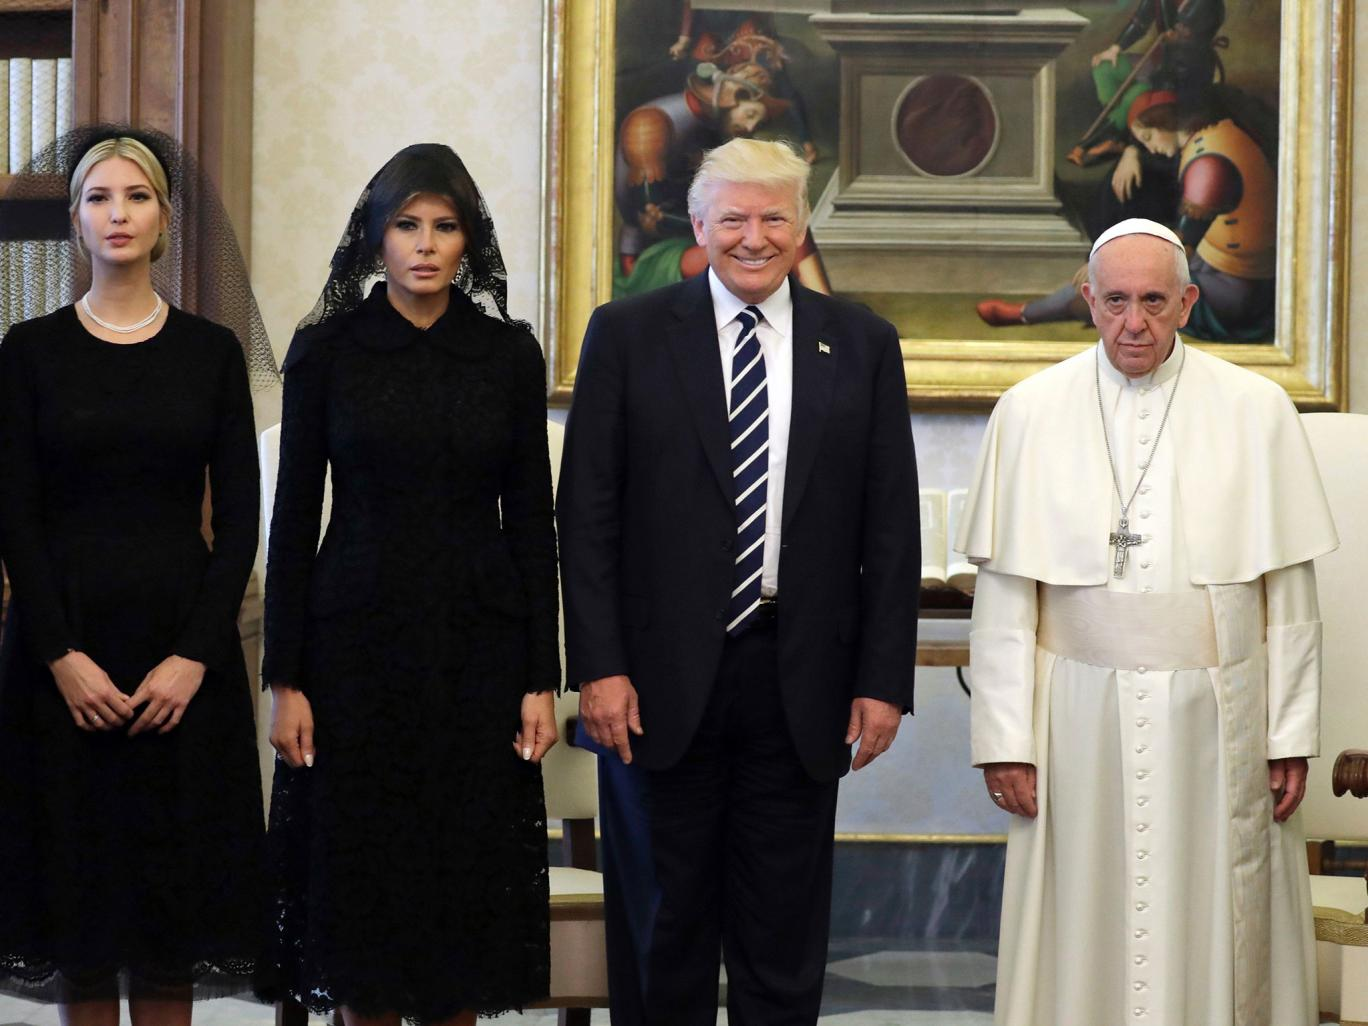 Pope Francis poses with US President Donald Trump, First Lady Melania Trump and the daughter of Ivanka Trump at the end of a private audience at the Vatican (AFP/Getty)